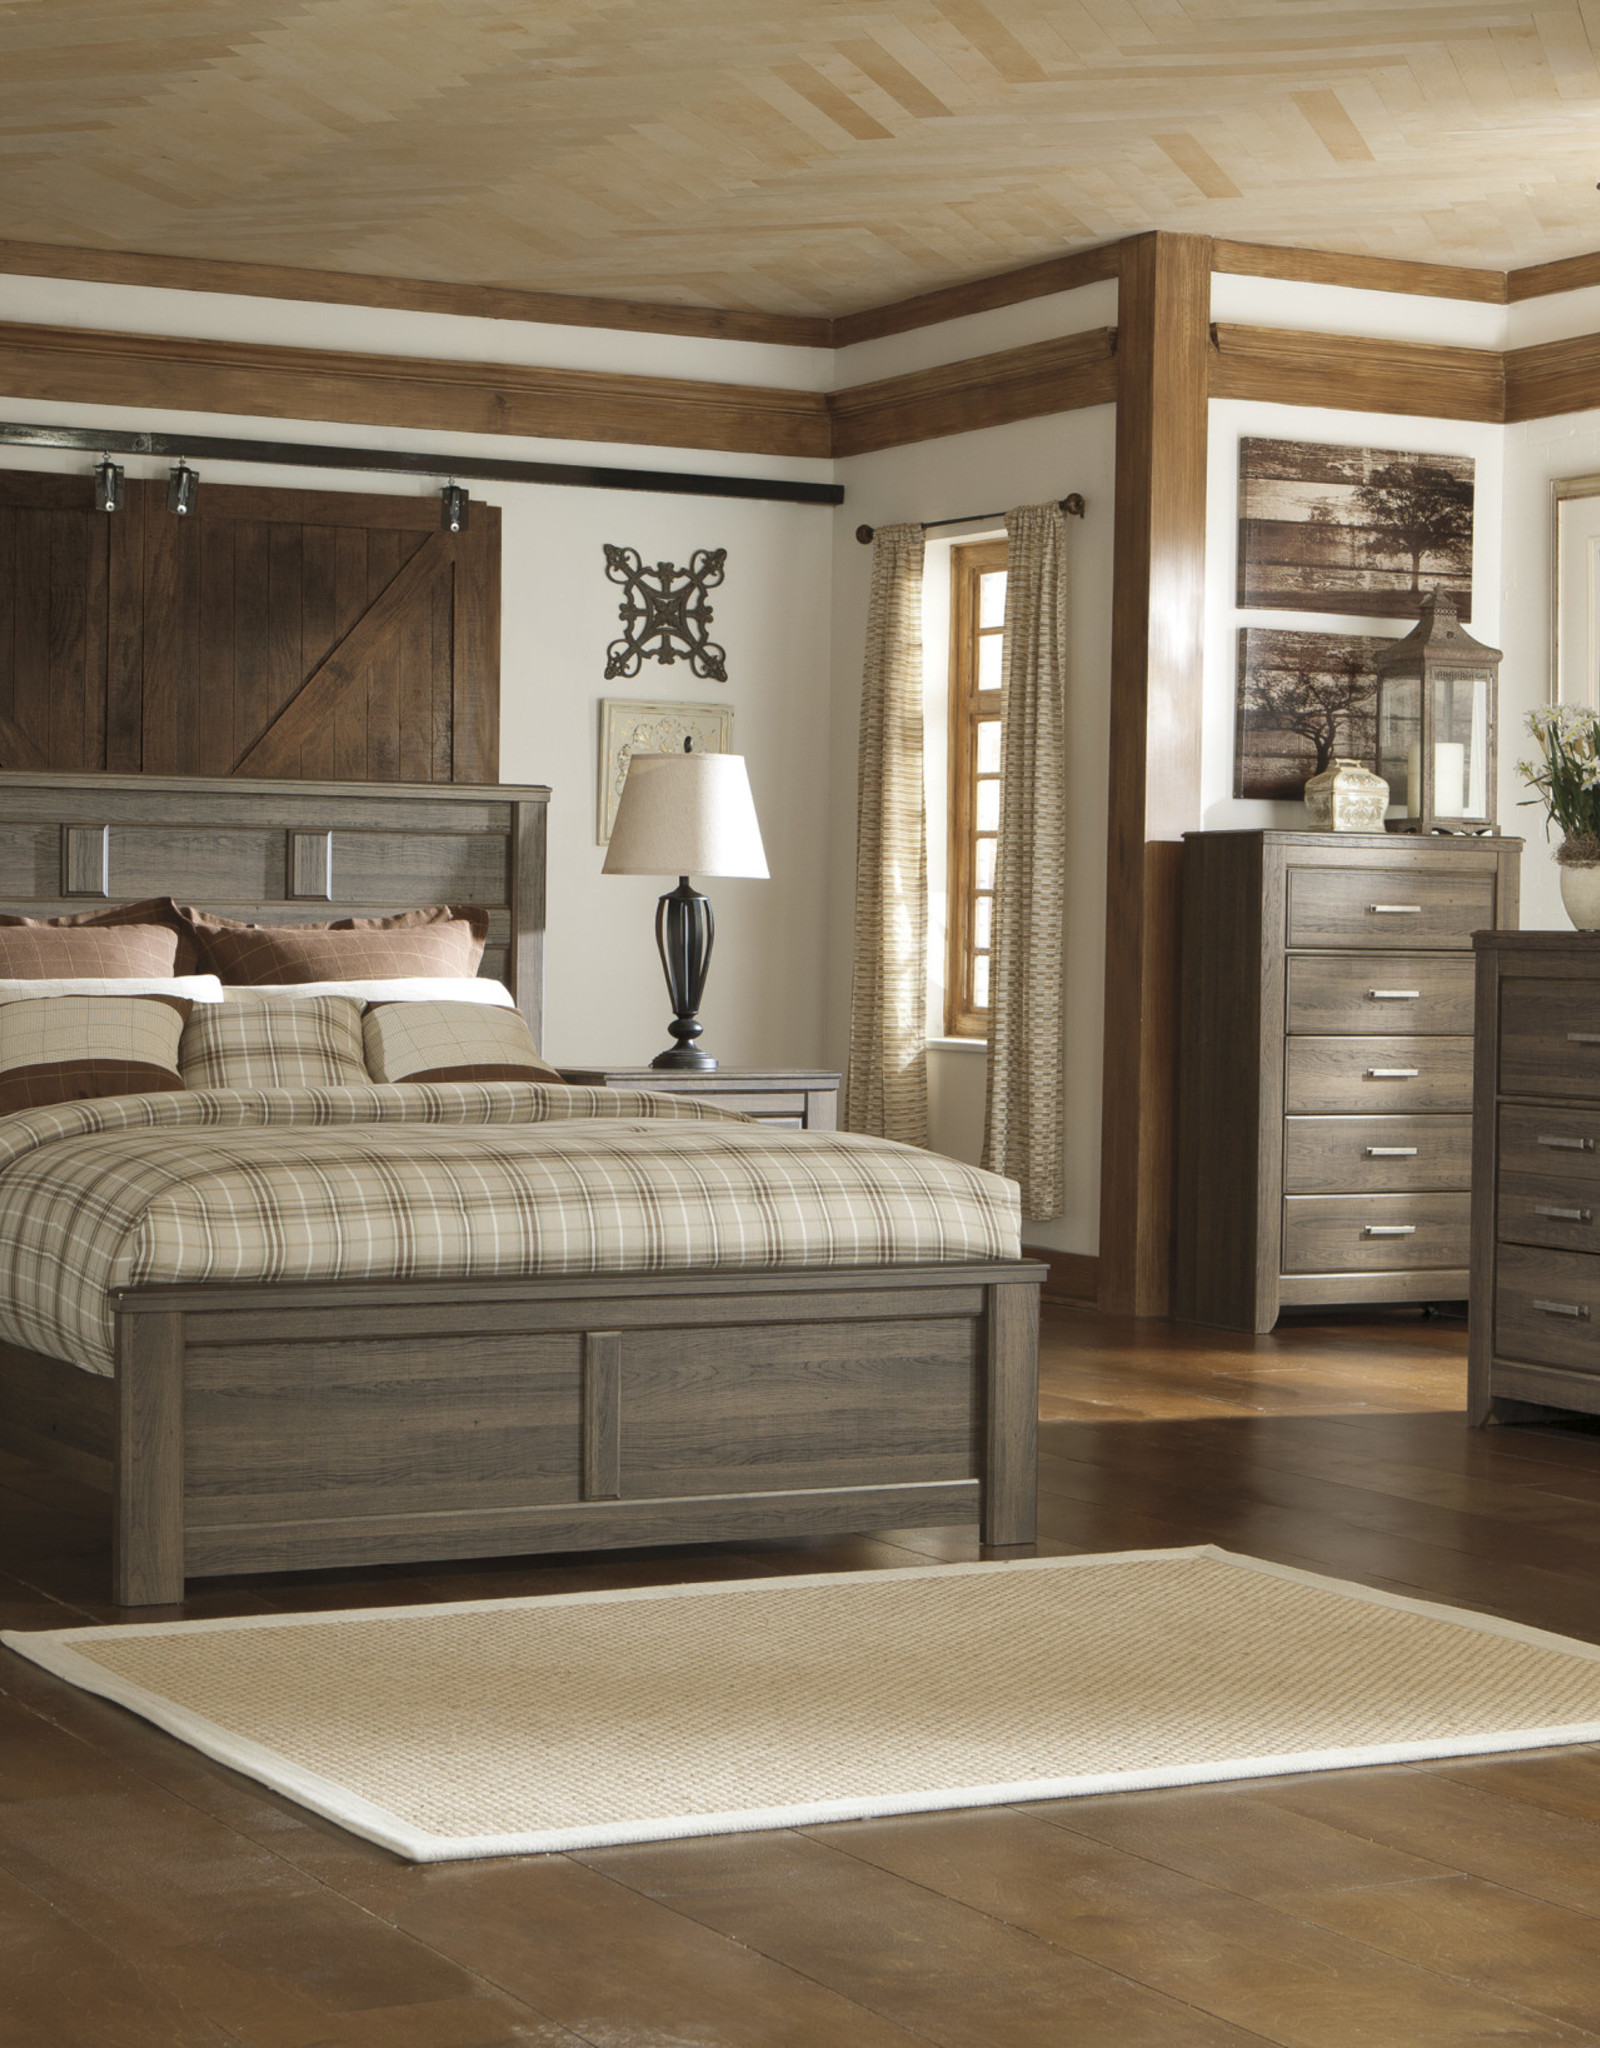 Juararo Bed (includes headboard, footboard, and rails)